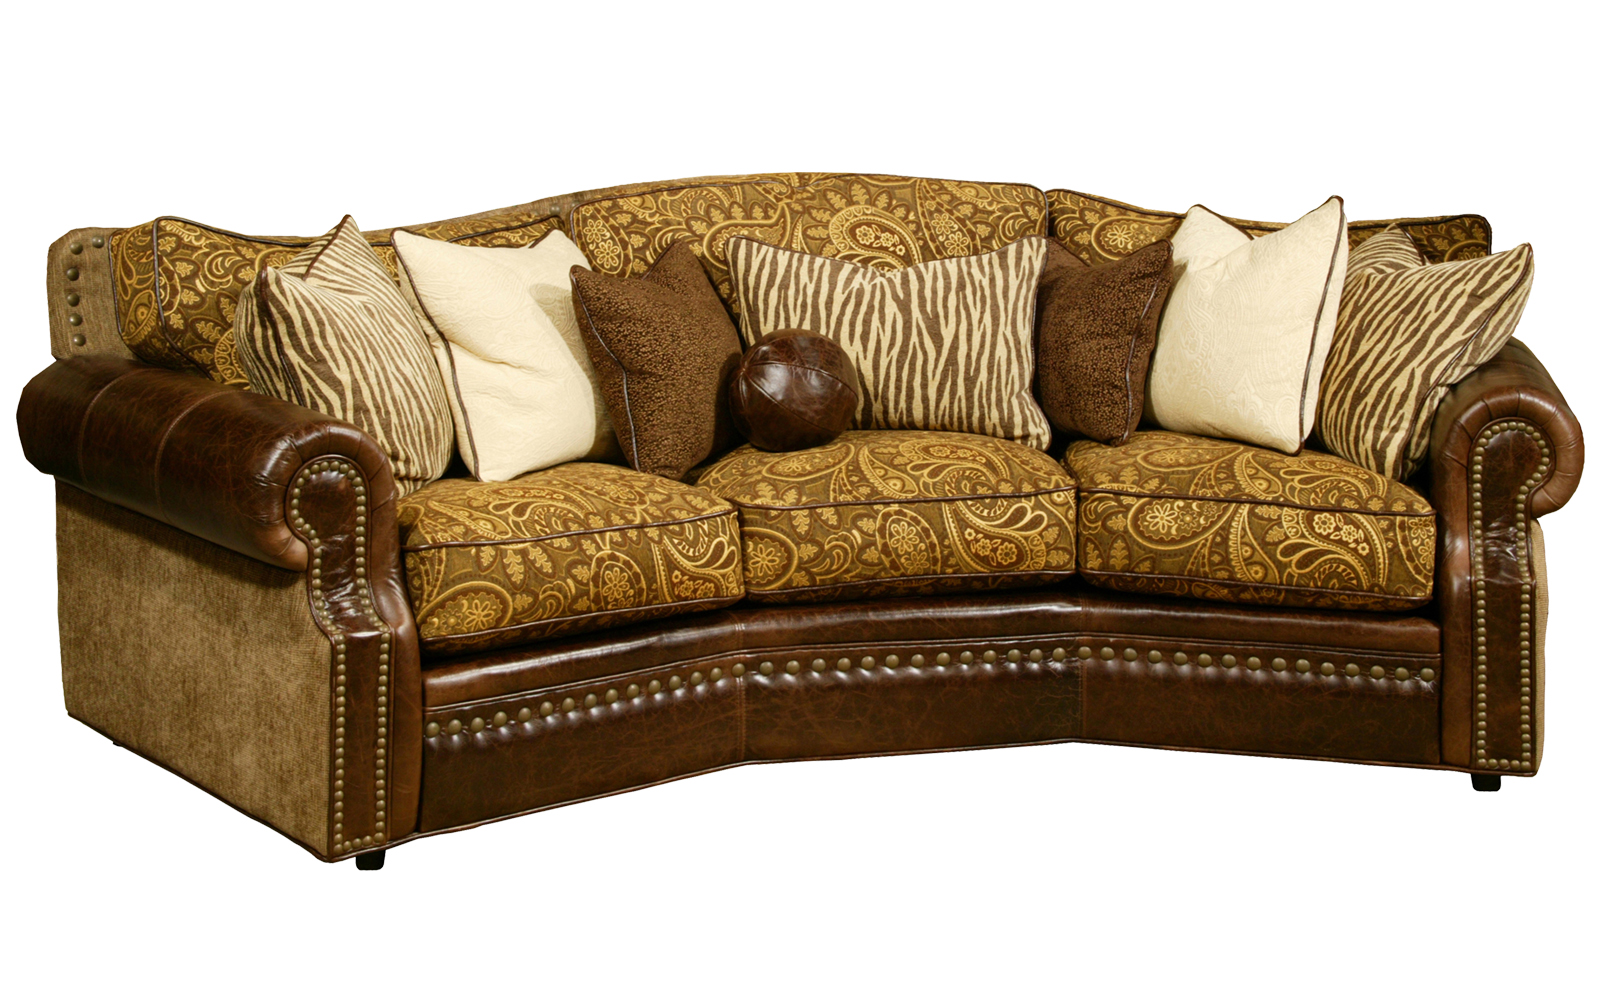 Cartwright conversation sofa arizona leather interiors for Conversation sofa